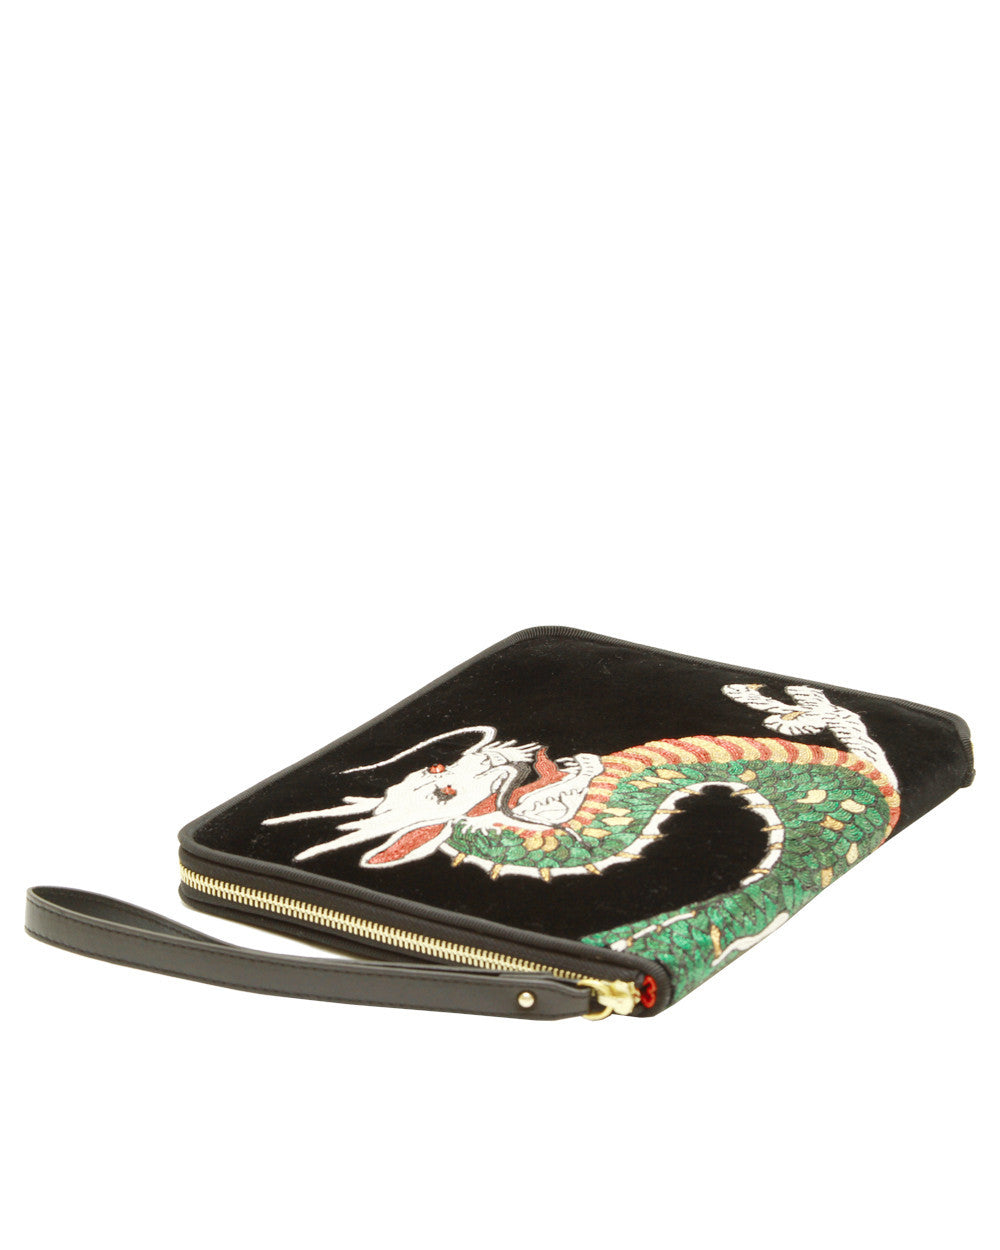 Christian Louboutin Ipad Case